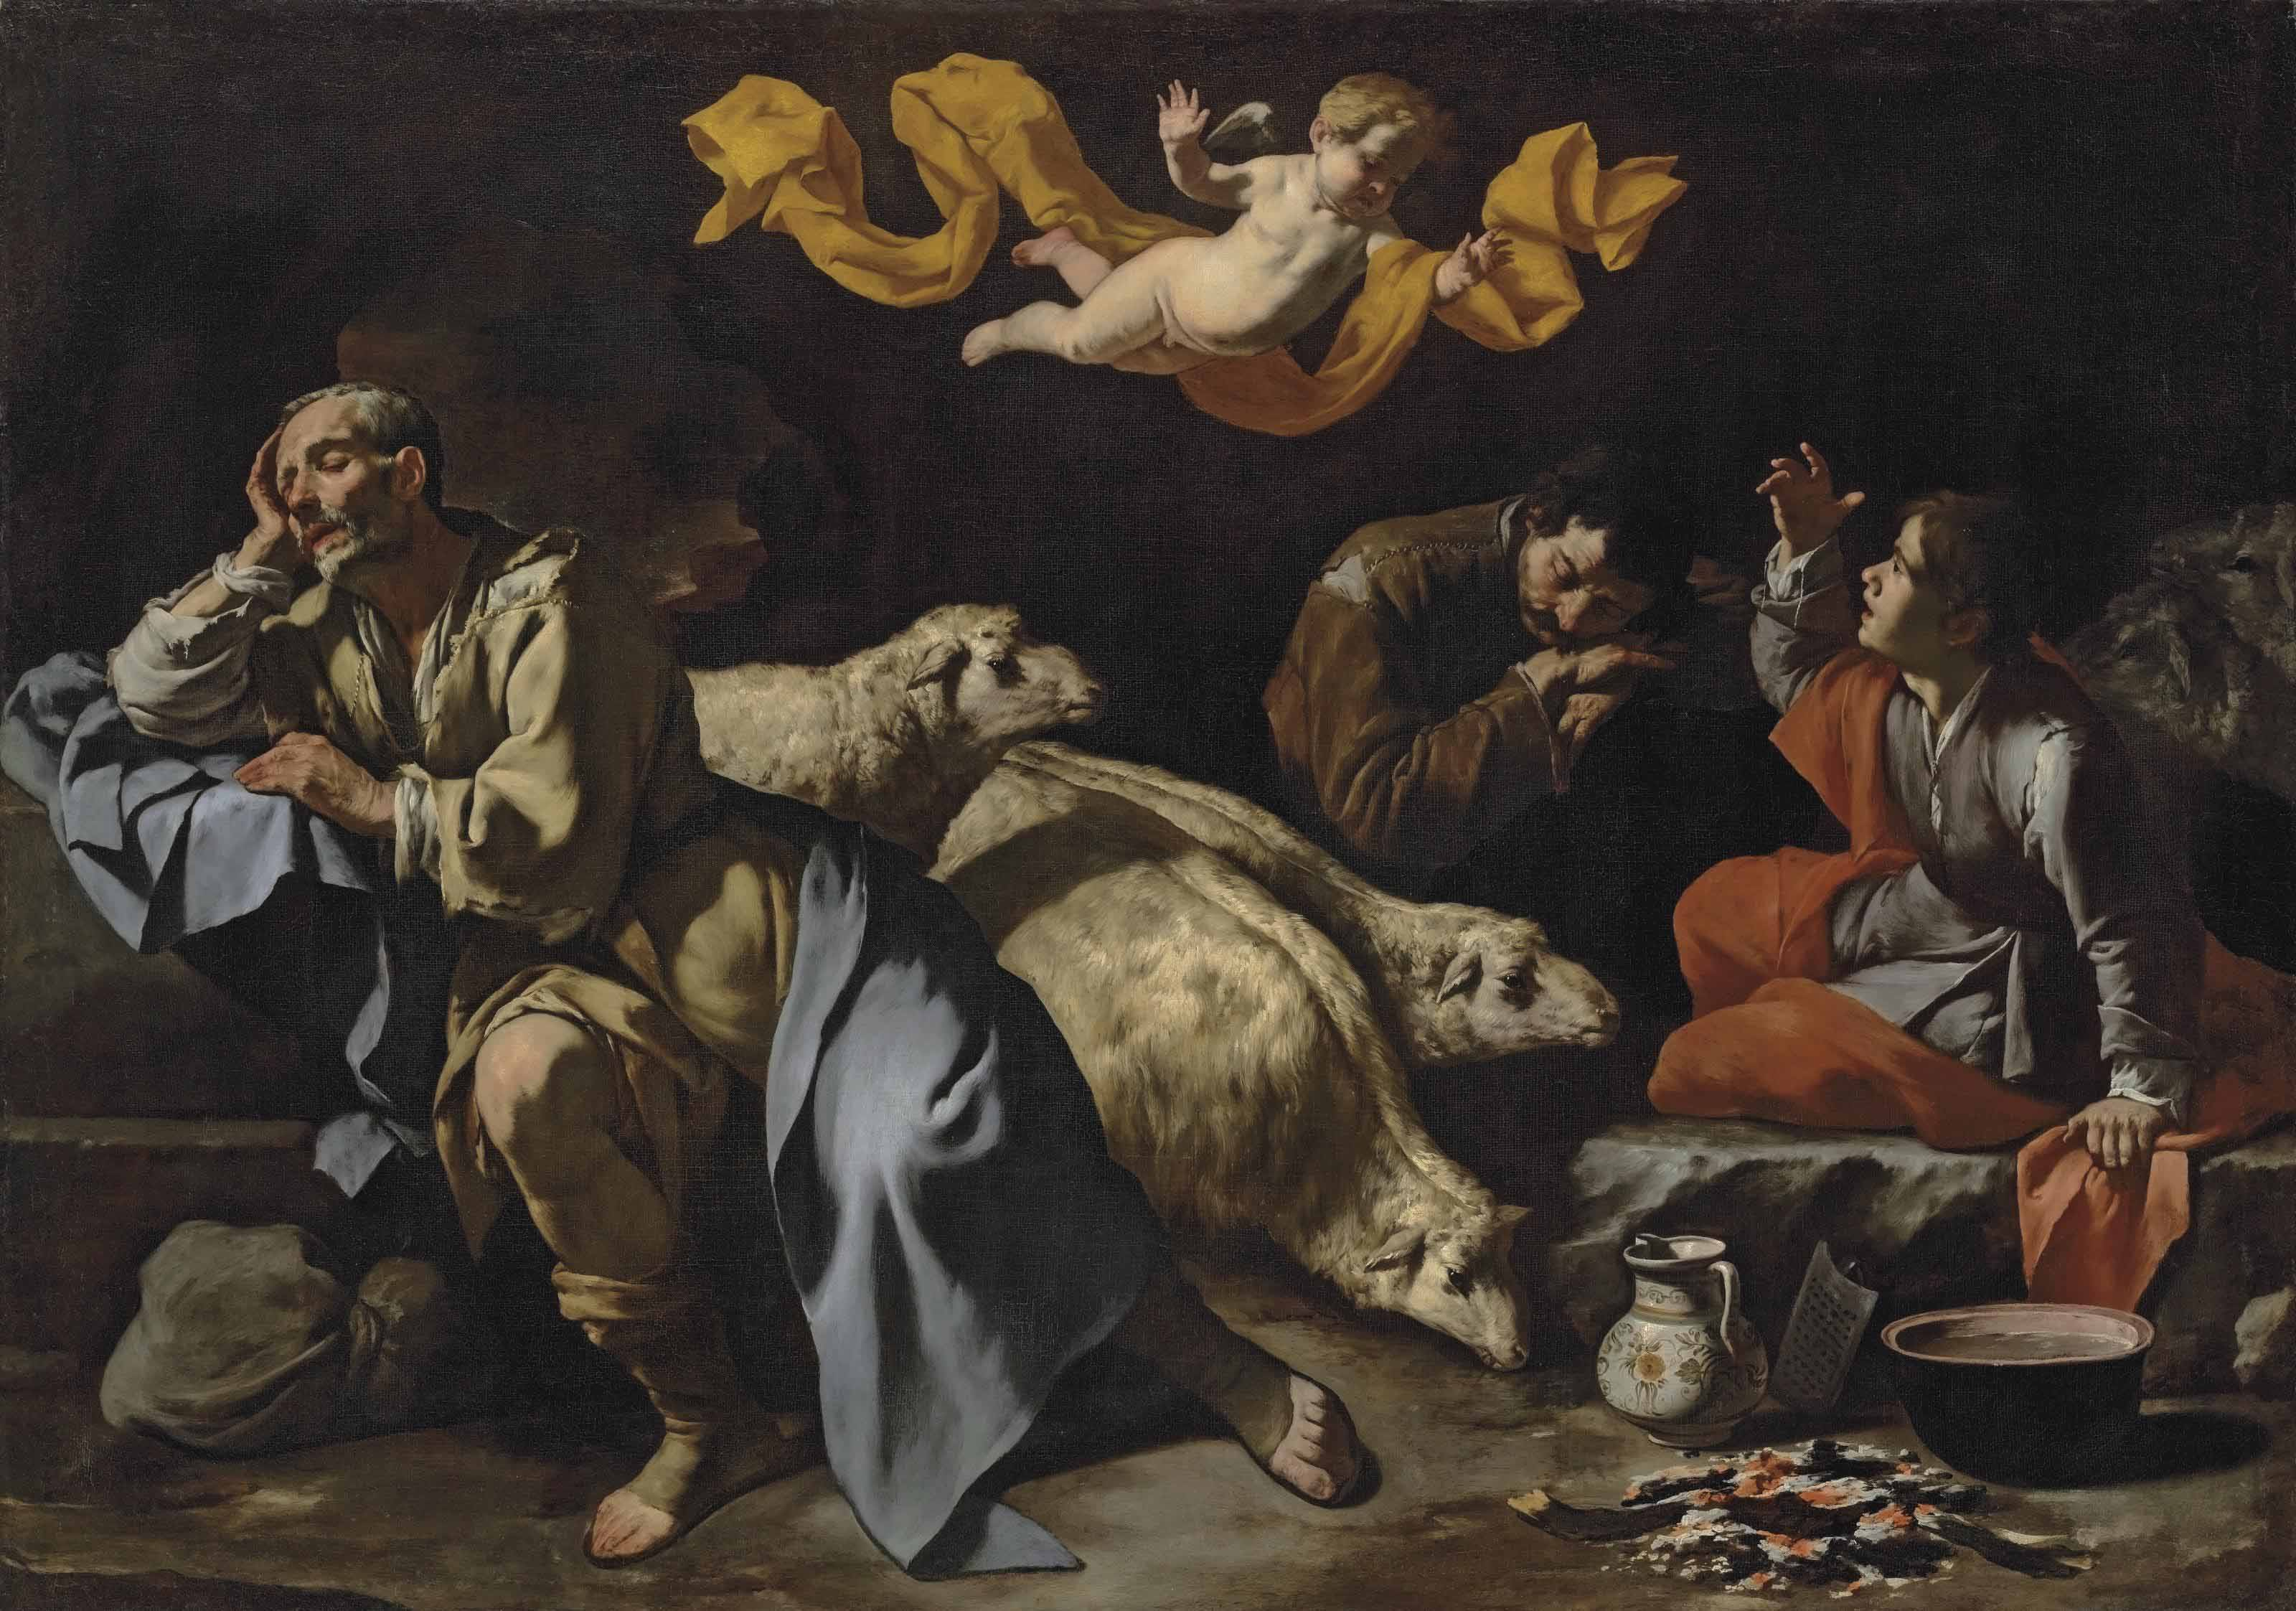 The Master of the Annunciation